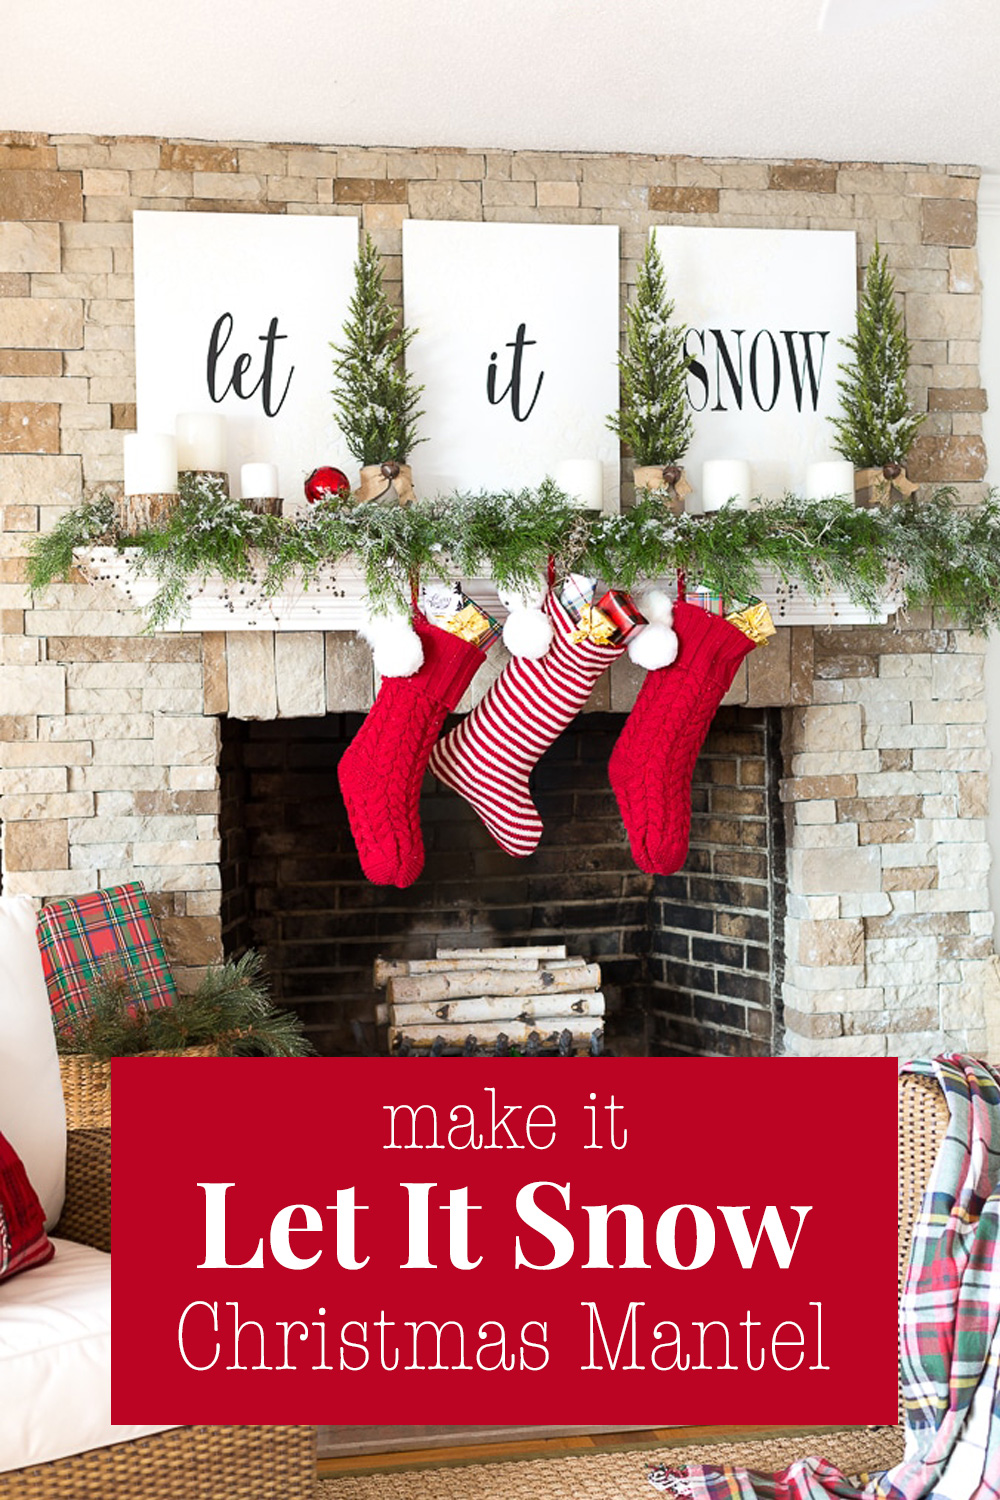 Christmas Mantel Decorating: Let It Snow | In My Own Style